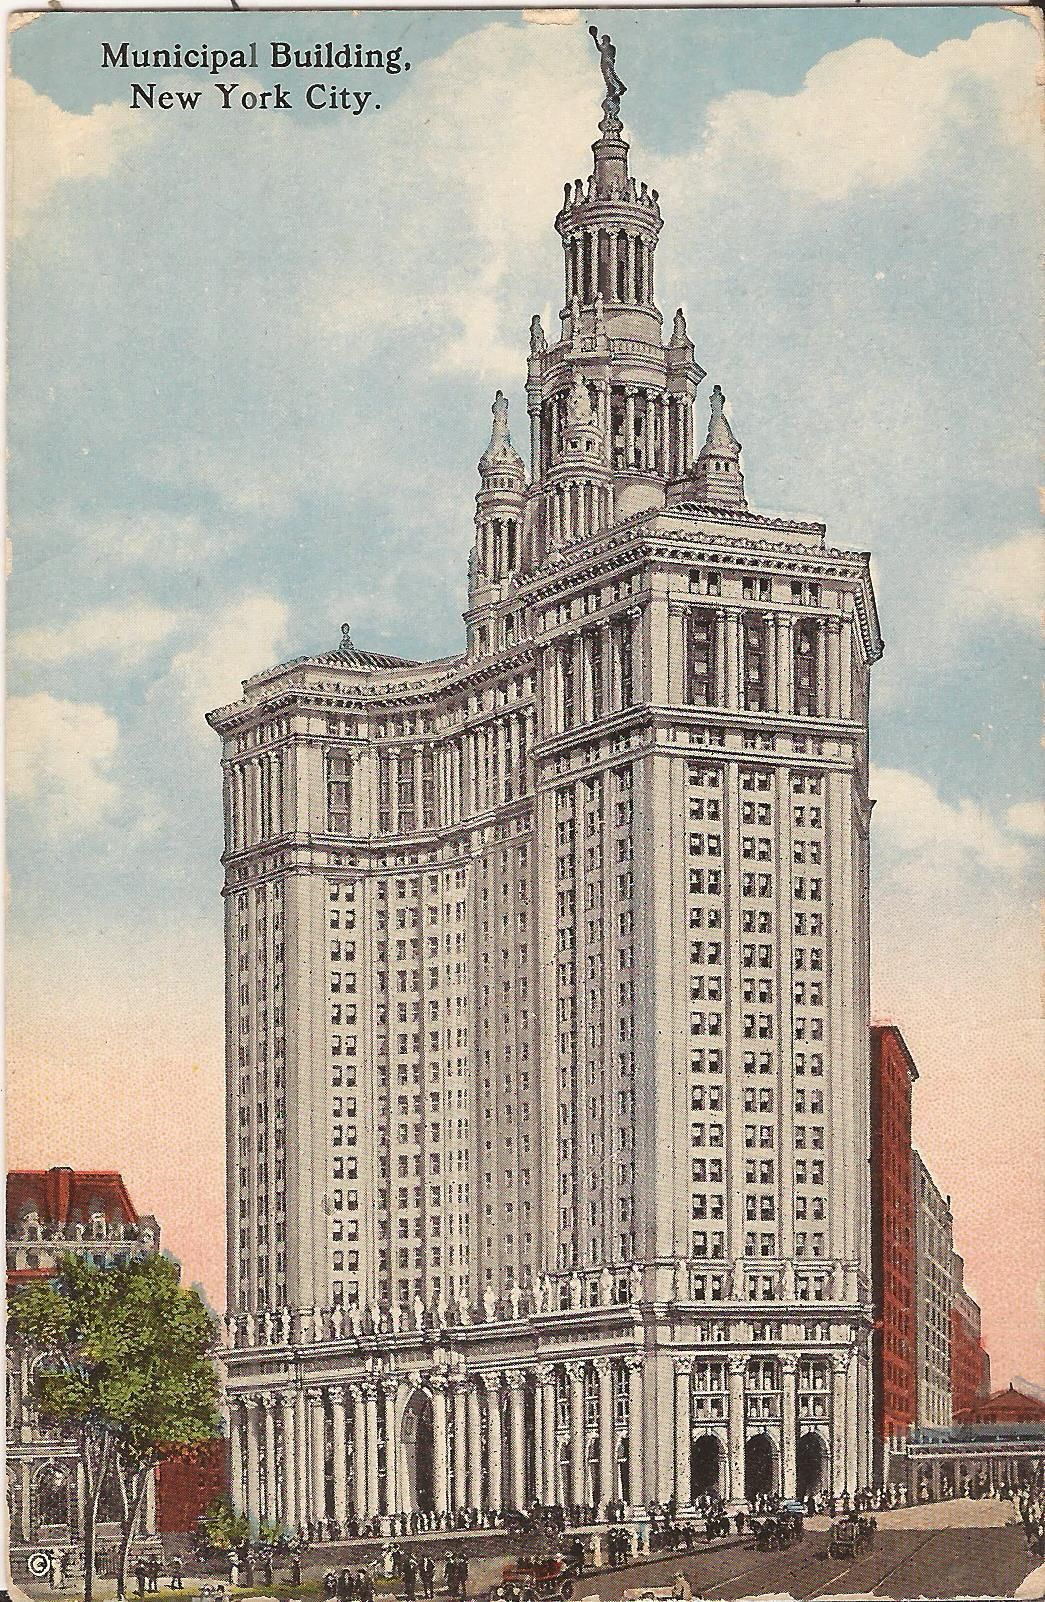 vintage postcard new york city manhattan municipal building architecture postcard new york city new york city manhattan vintage postcard new york city